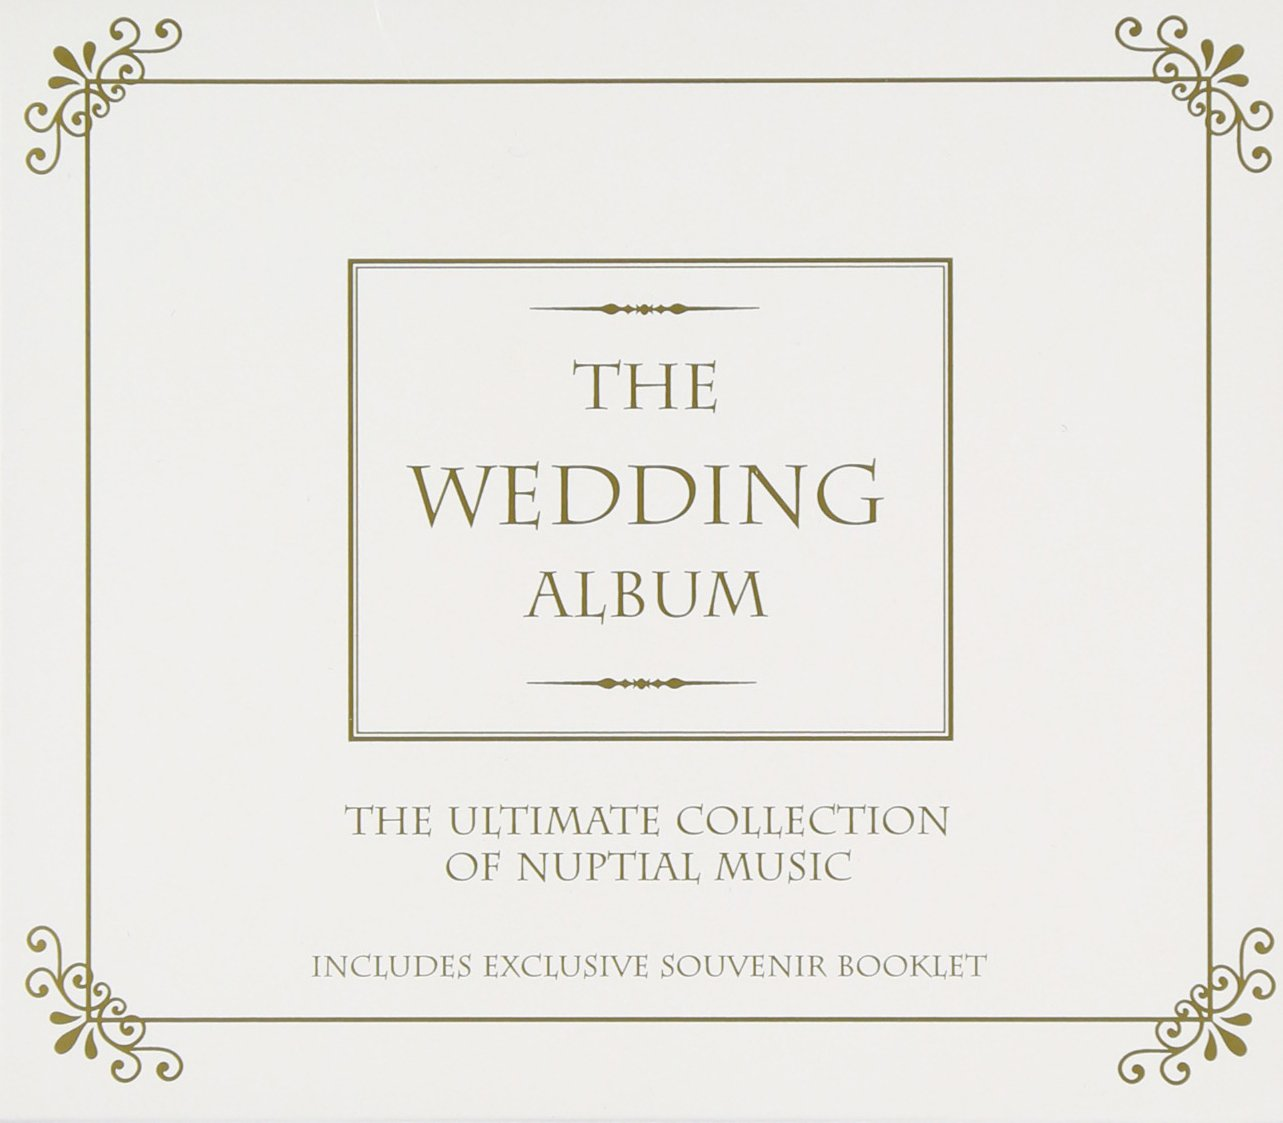 Wedding Album - The Ultimate Collection Of Nuptial Music by RHIP2